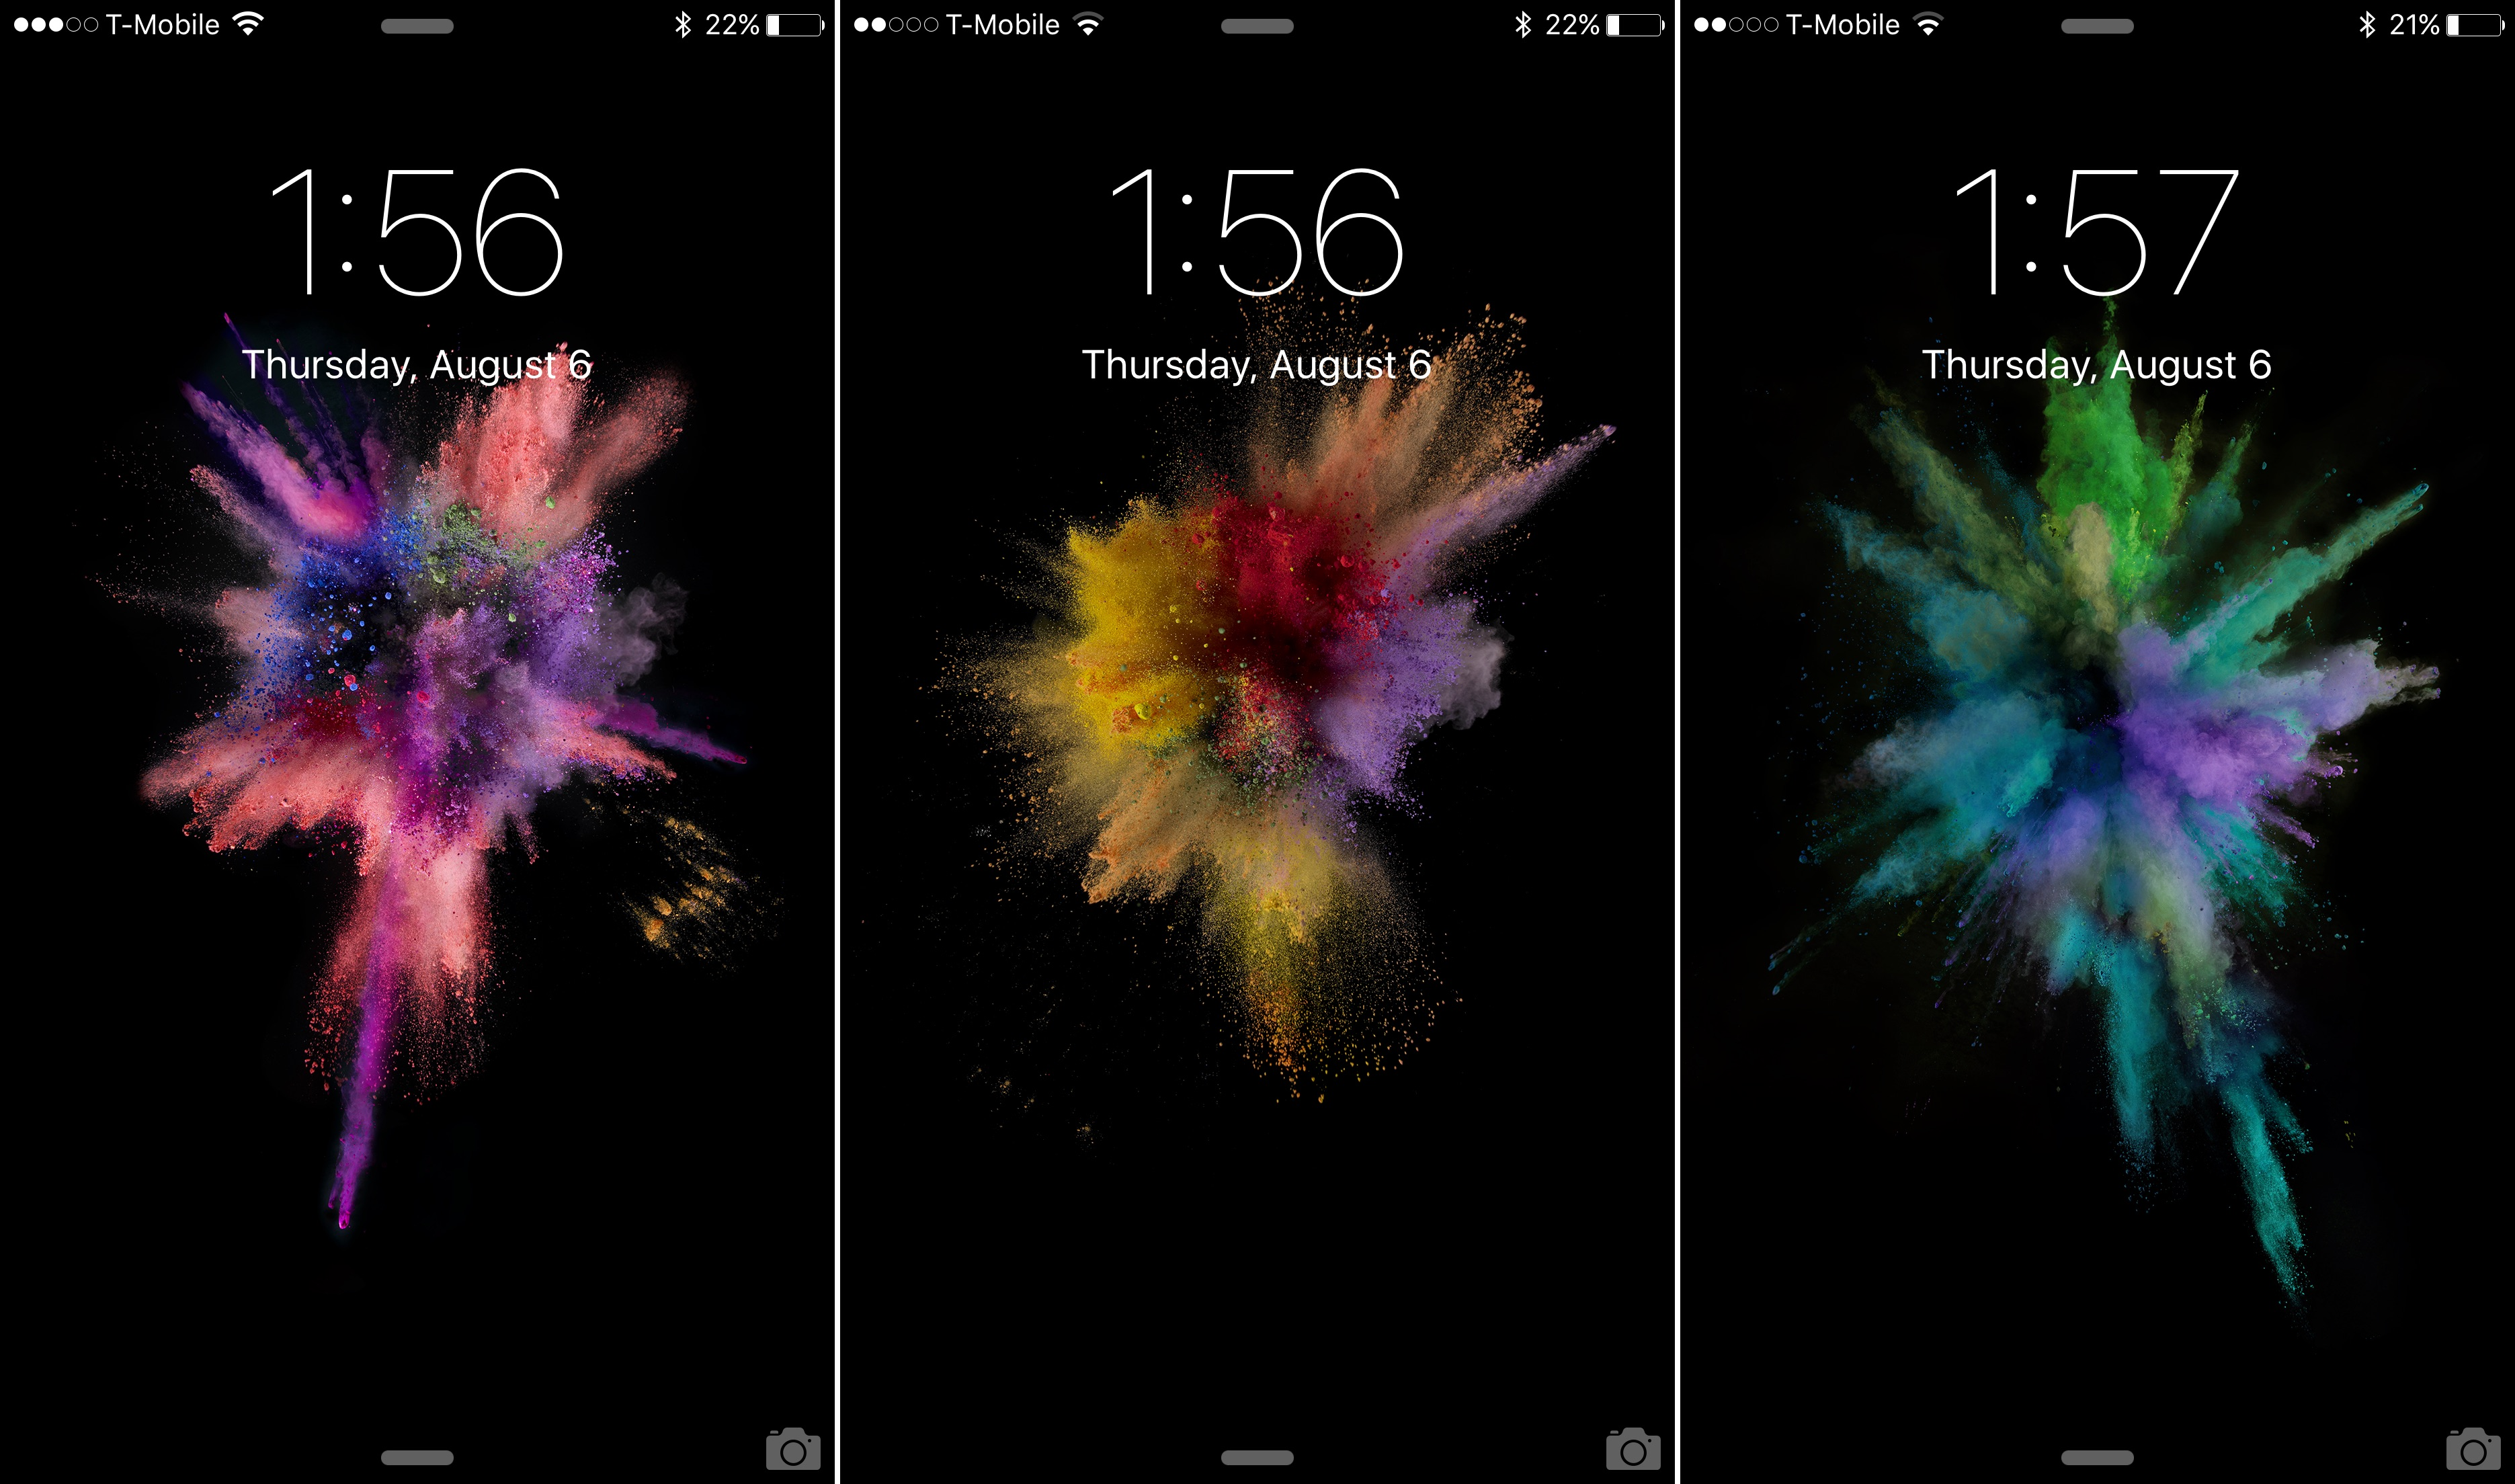 Download the new iOS 9 beta 5 wallpapers 3742x2208